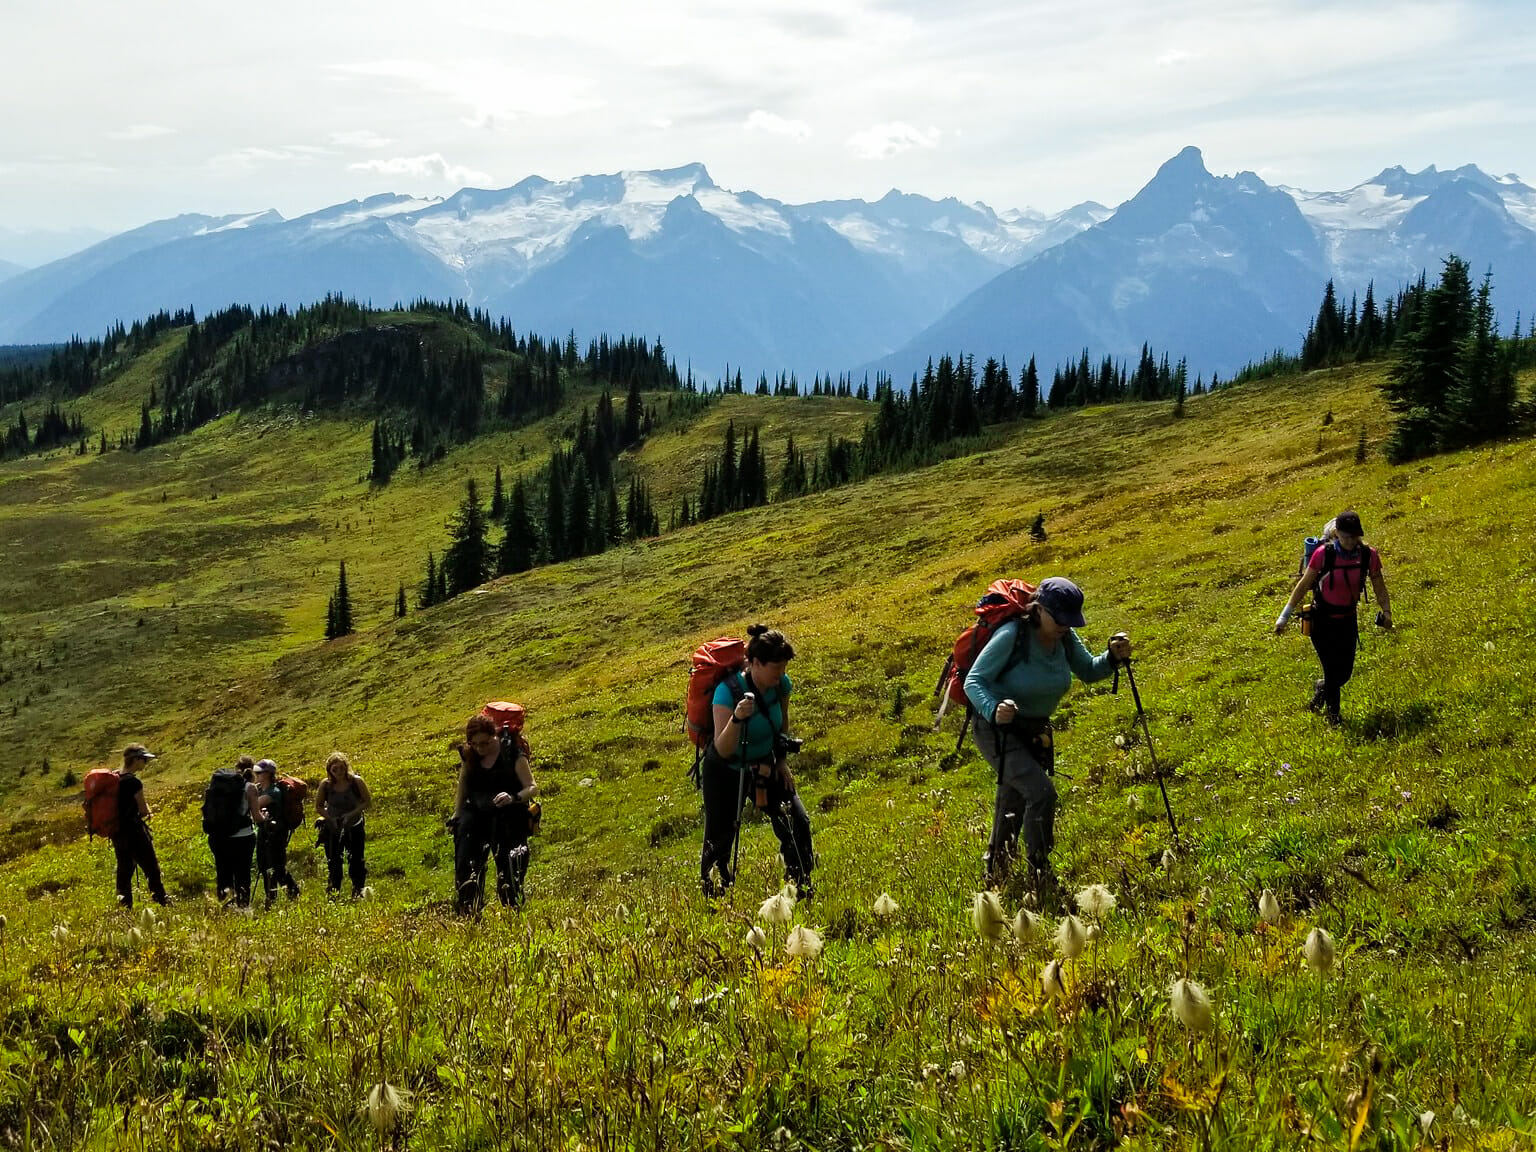 Line of people hiking up a grass covered slope